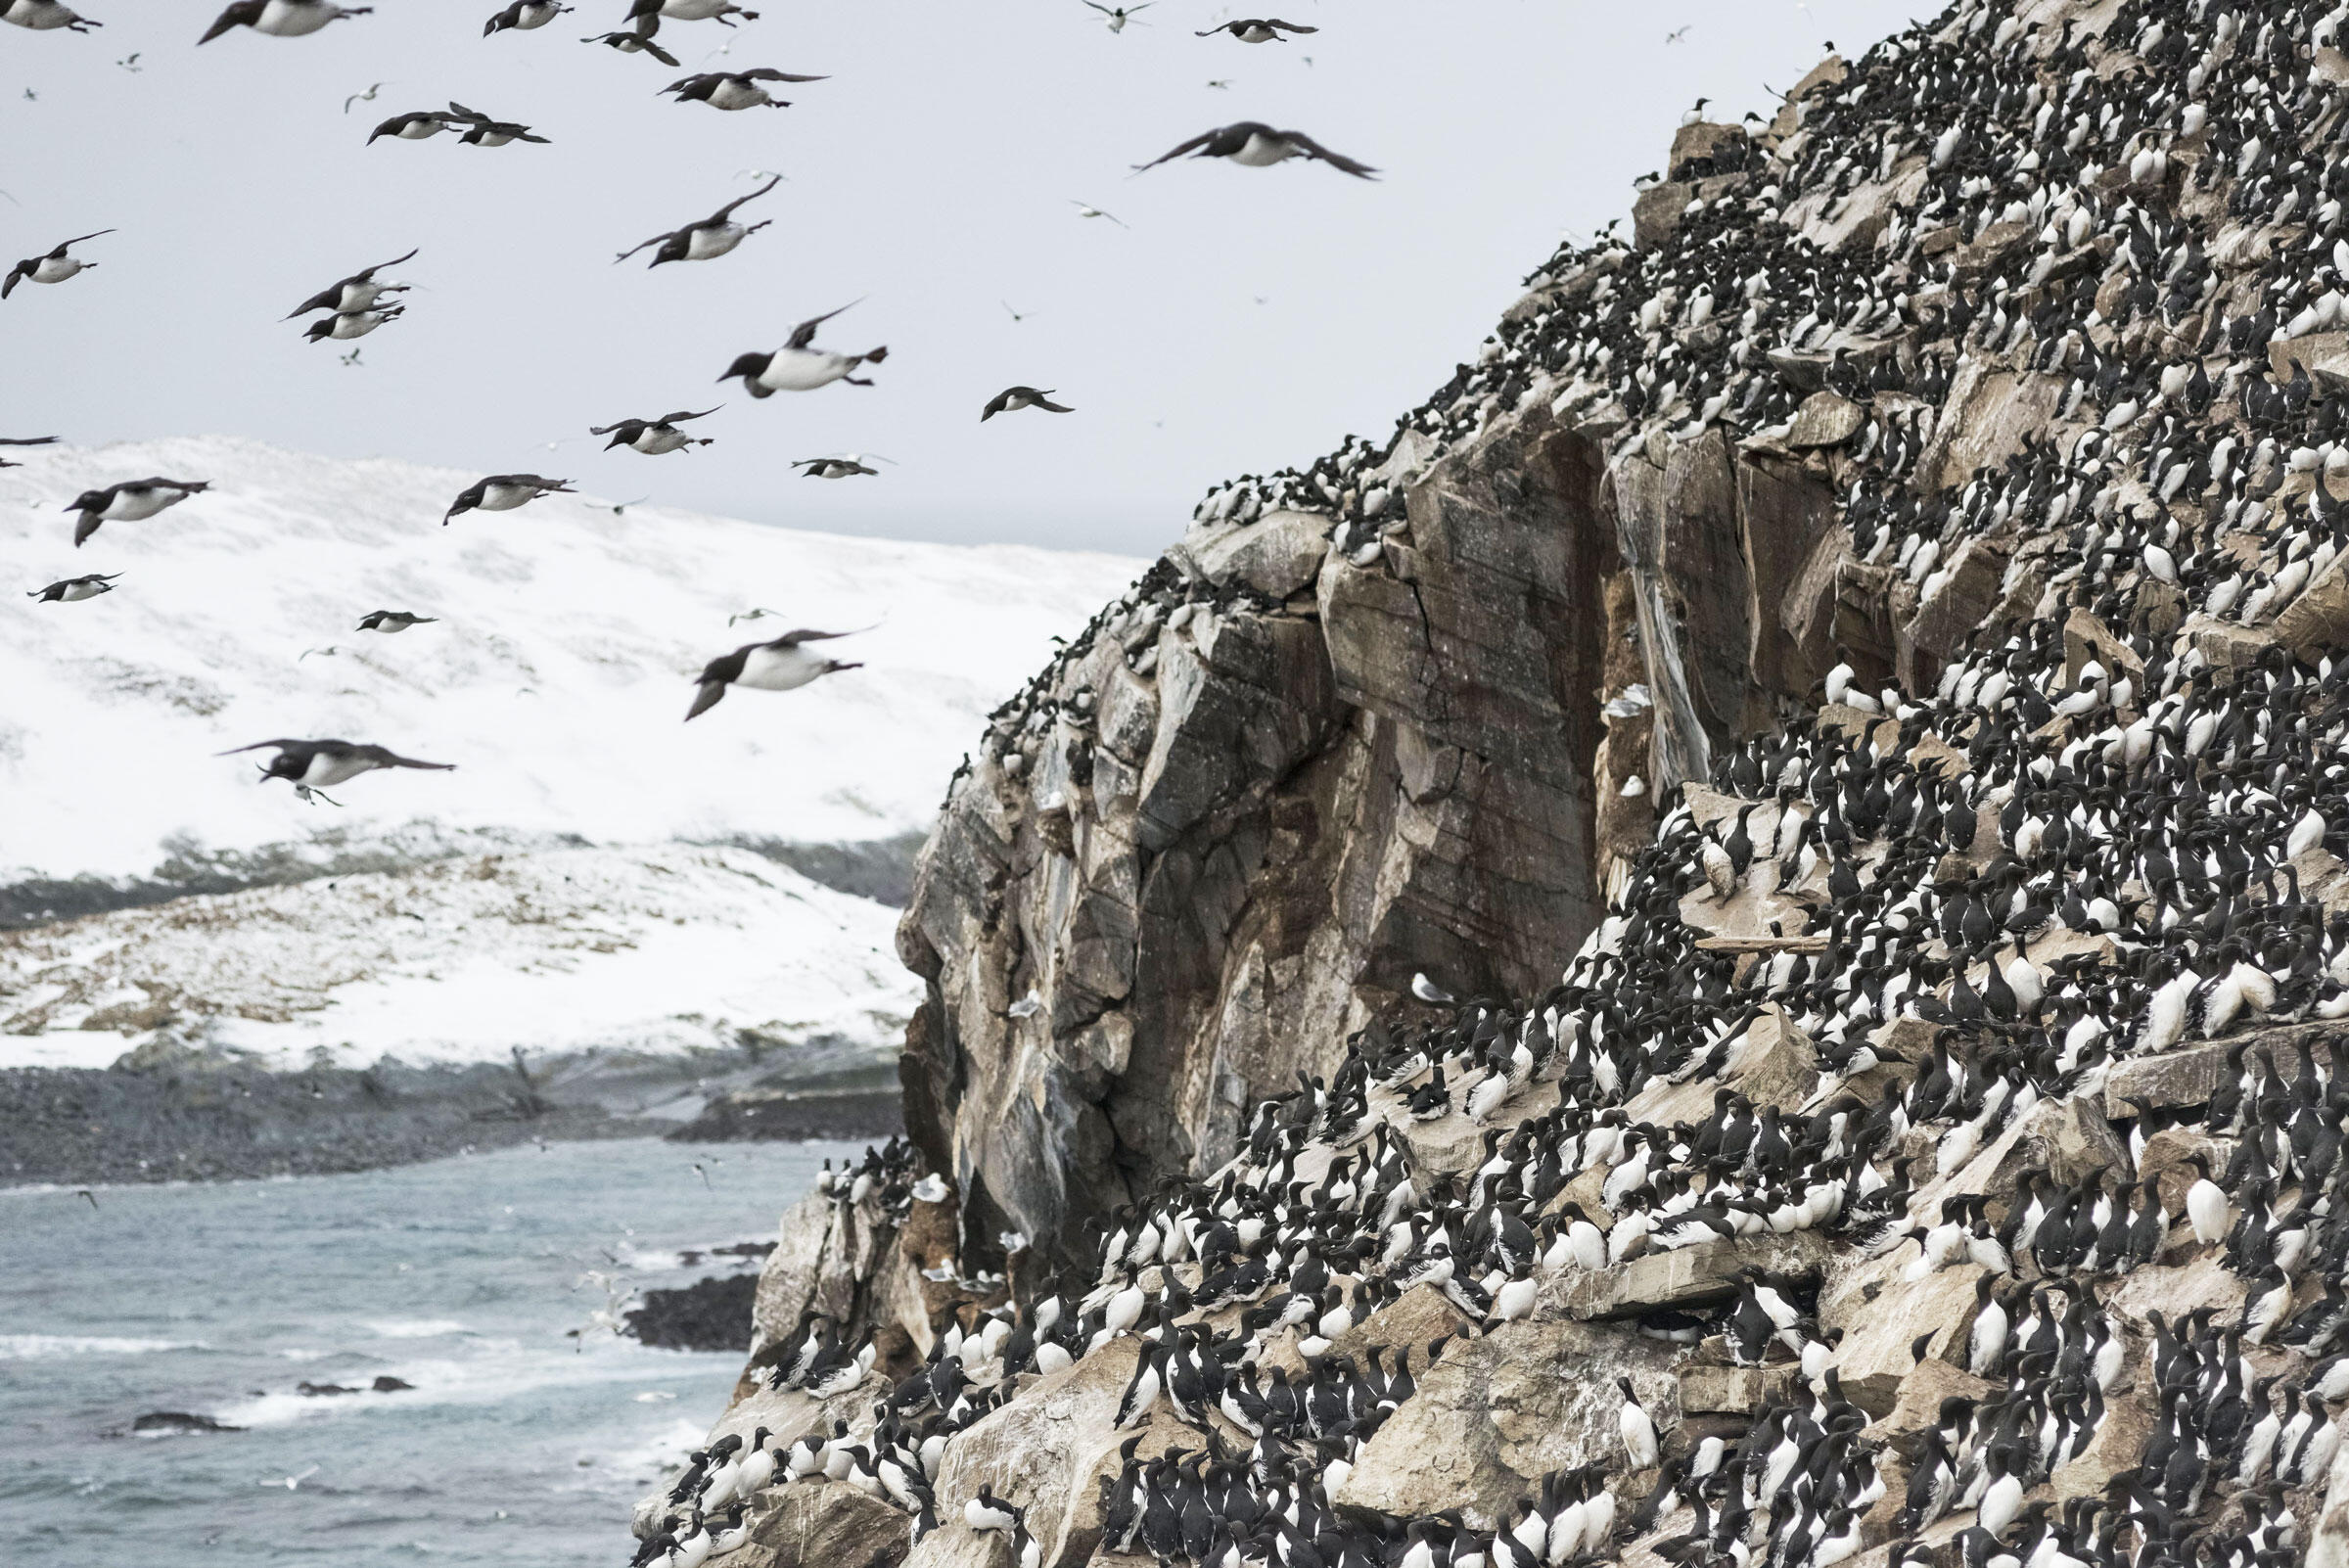 Common Murre nesting colonies are filthy and packed—both features that researcher Tim Birkhead believes influenced murre egg shape over millions of years. Orsolya Haarberg/NPL/Minden Pictures